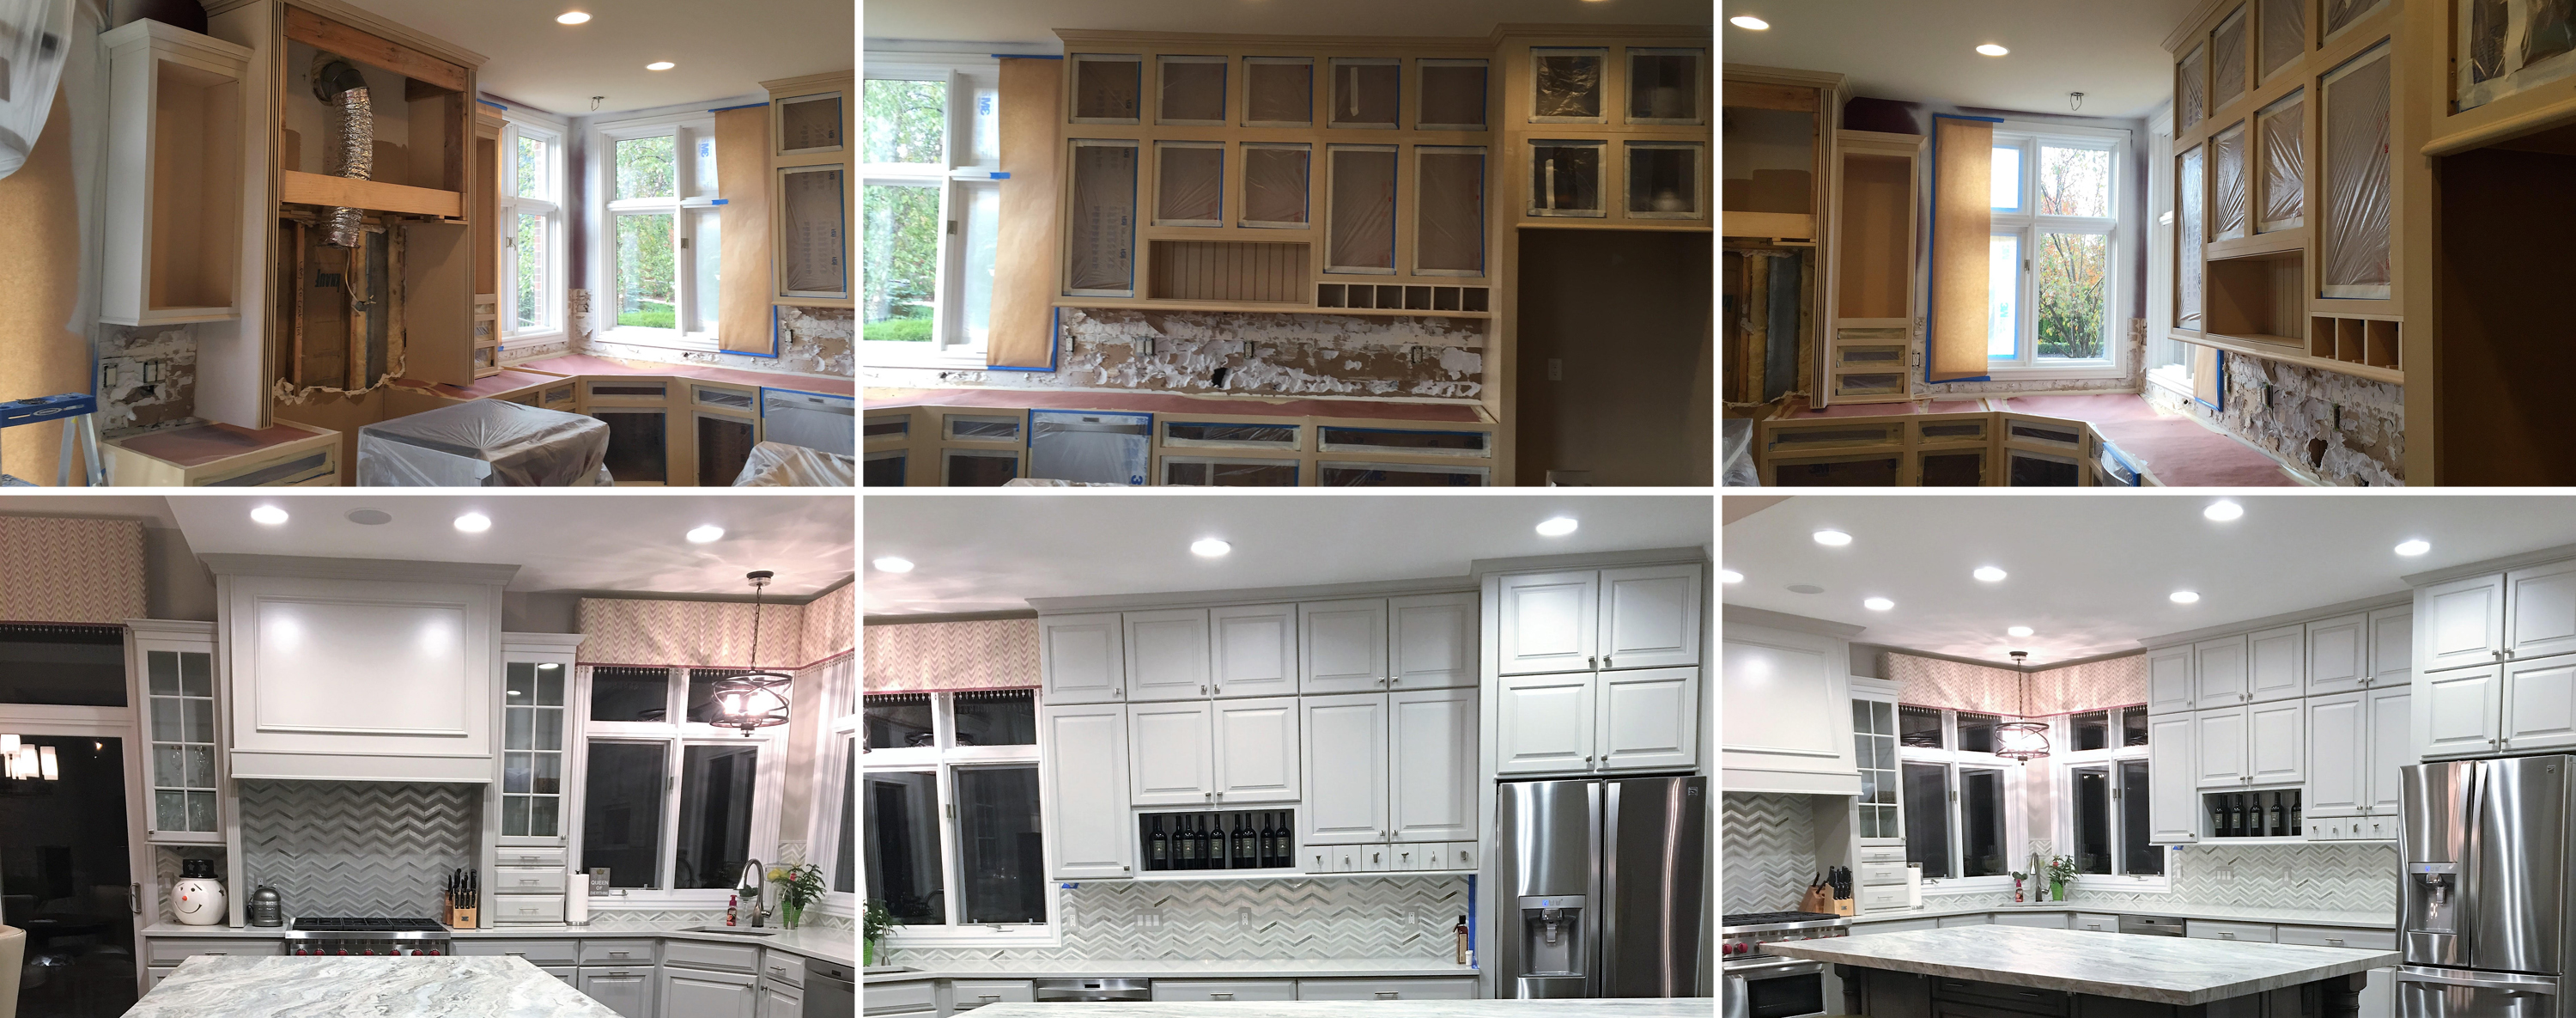 Kitchen Cabinet Refinishing Washington Township Michigan